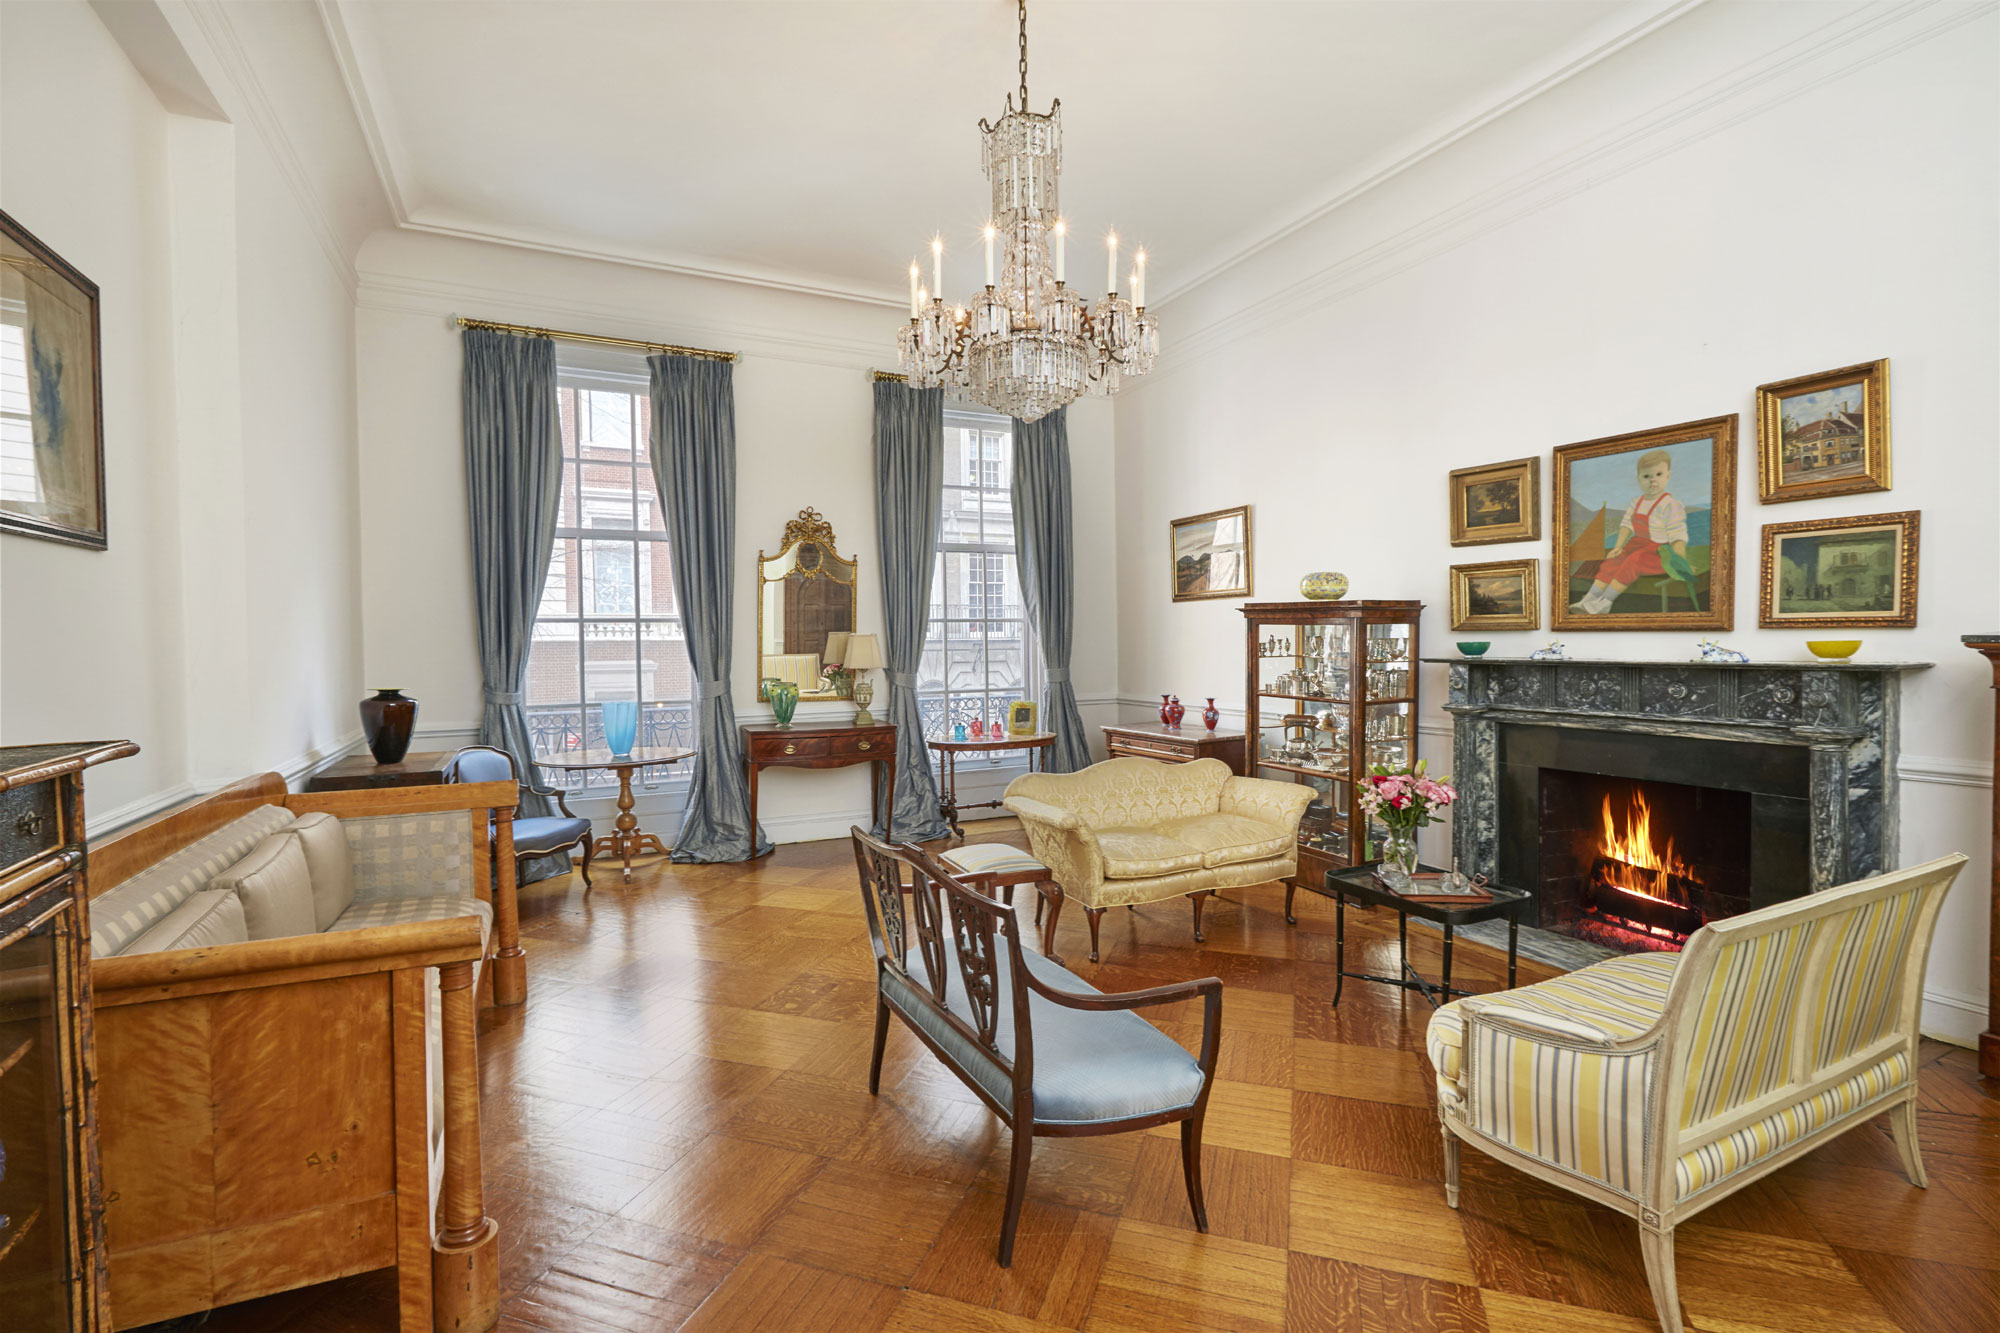 A tony address (on one of Manhattan's finest streets) and an illustrious provenance (the former home of legendary Hollywood composer Franz Waxman) are among the star qualities of this impeccable circa-1916 townhouse.